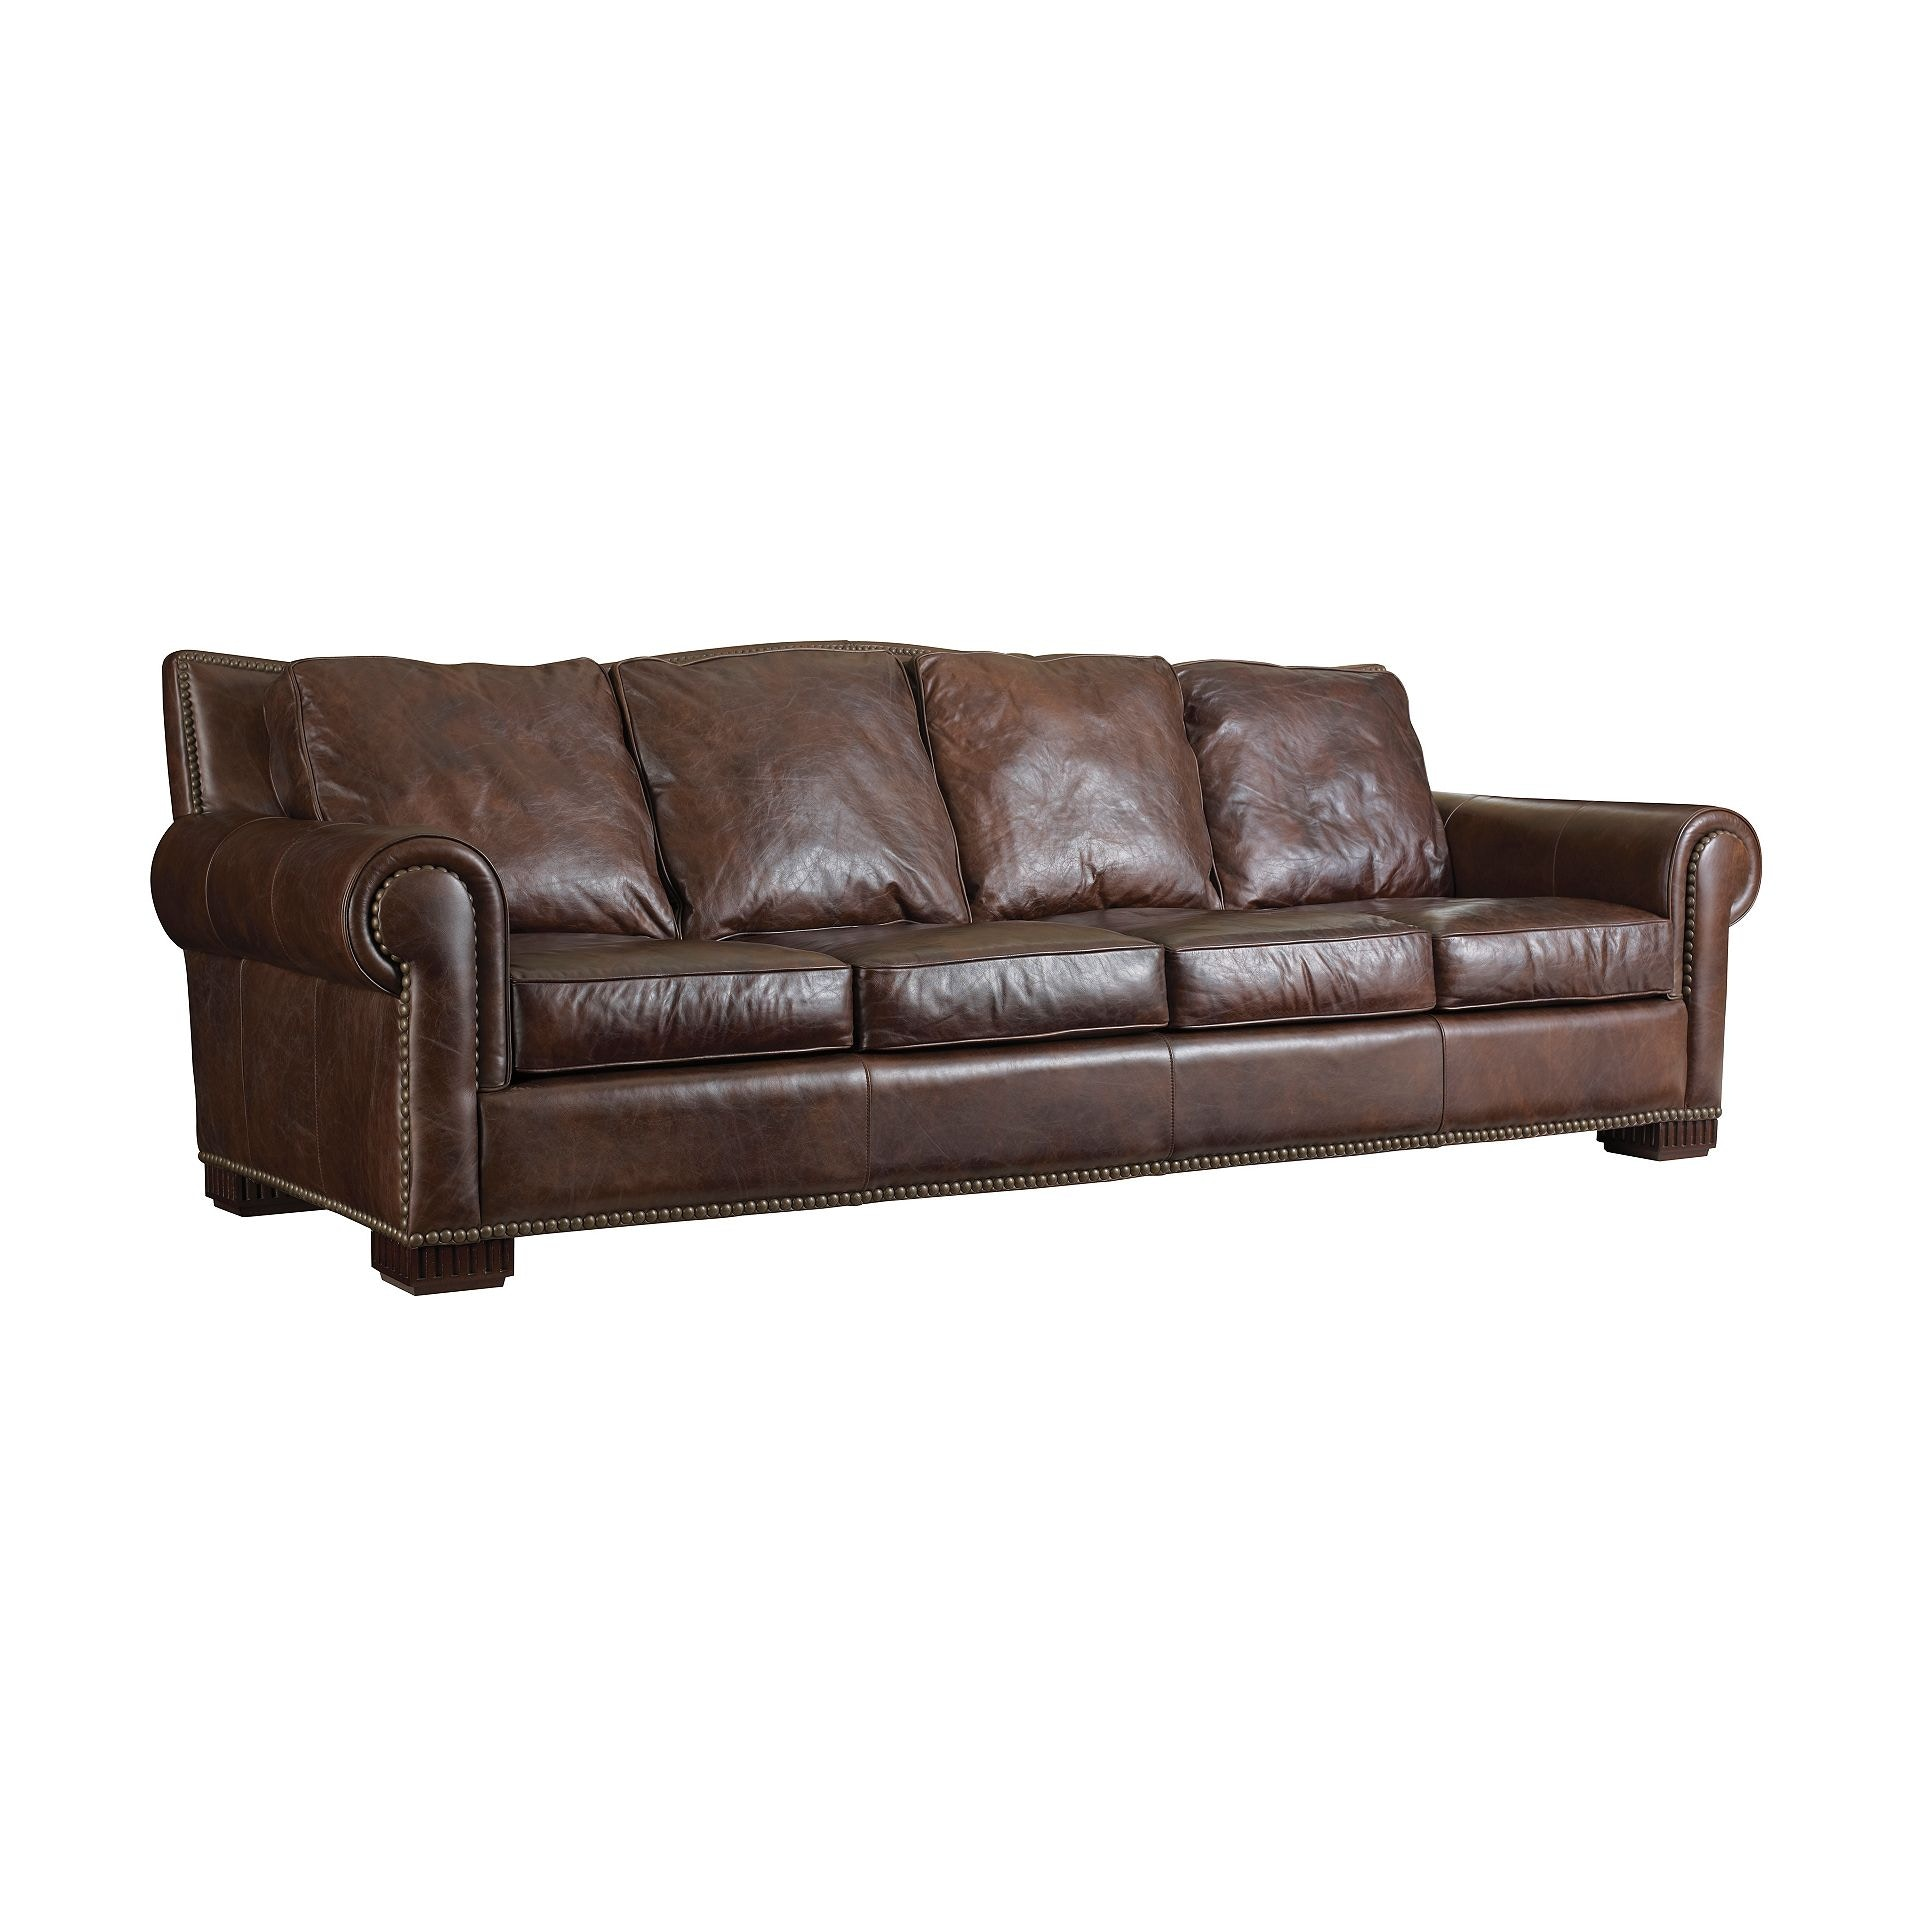 Henredon Furniture Henredon Leather Company Aberdeen Sofa IL7701 C